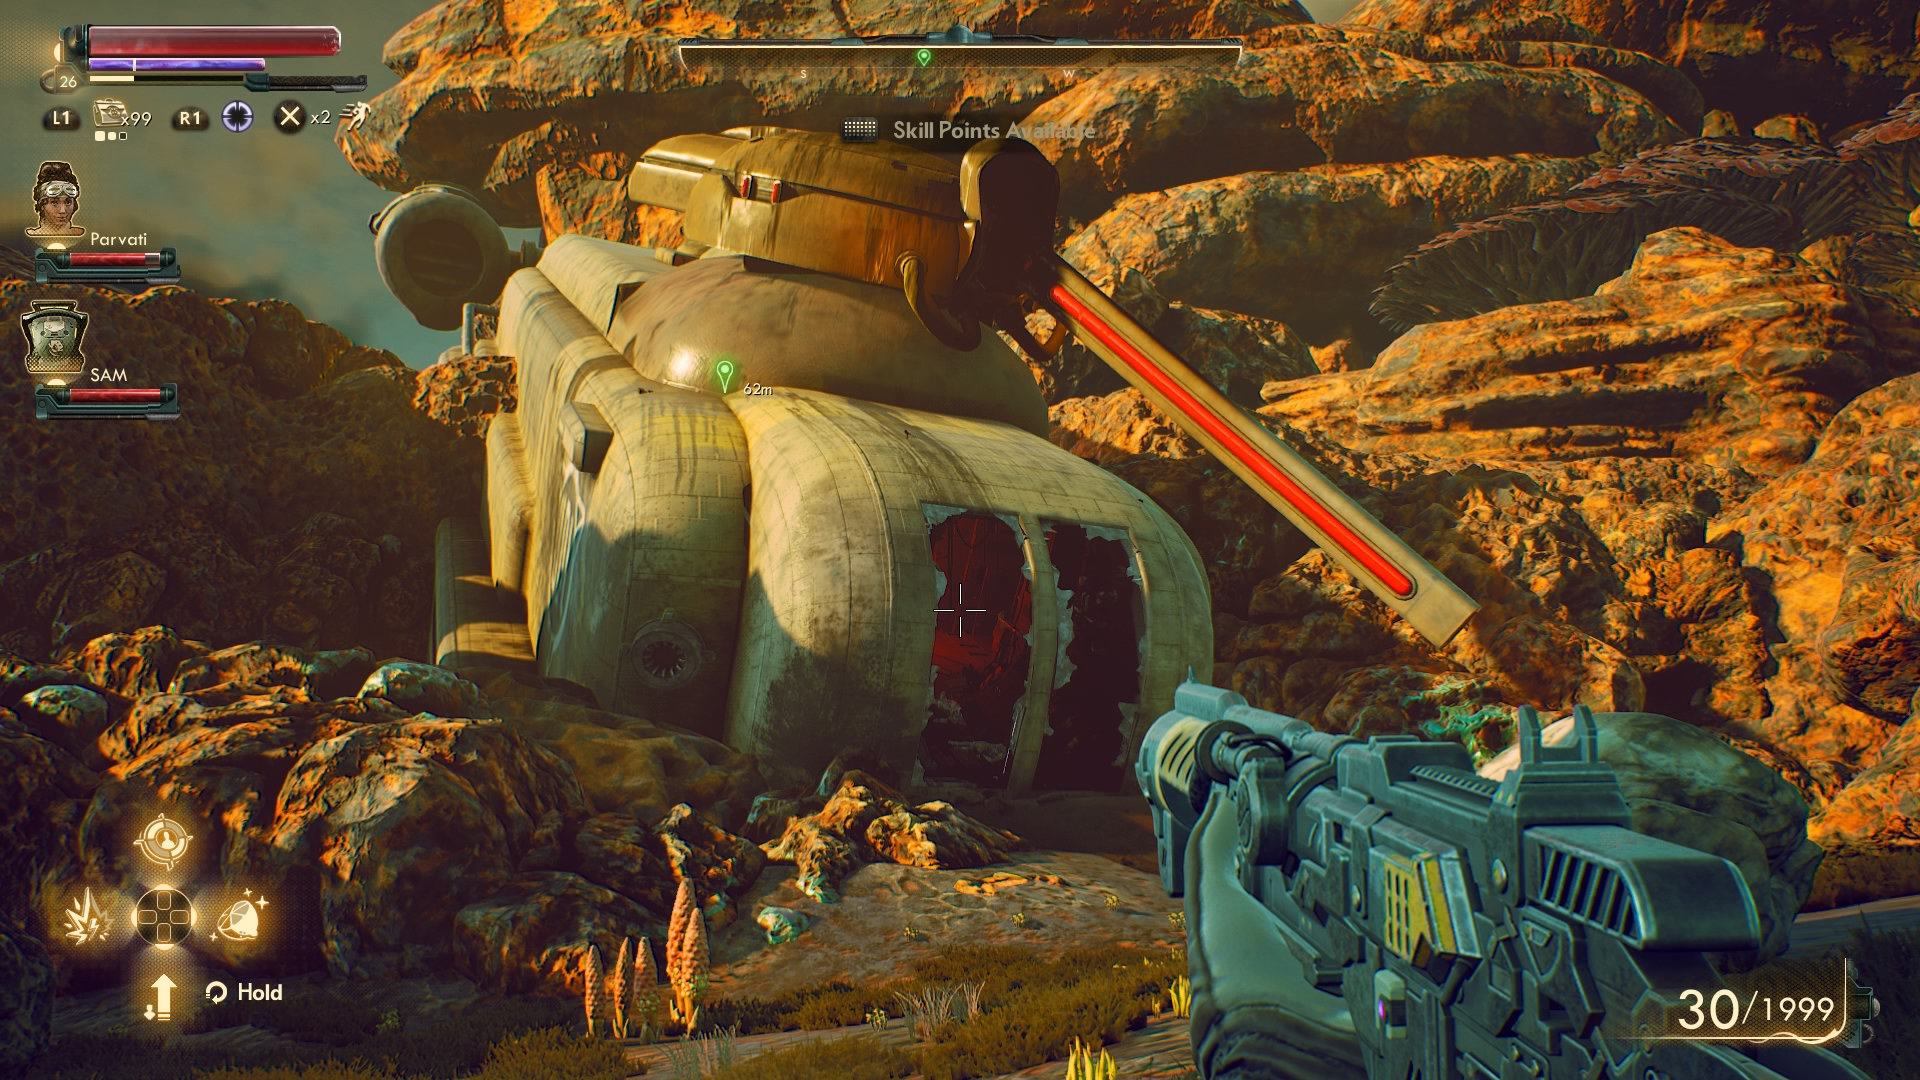 The Outer Worlds Canid S Cradle Quest Guide Should You Help Msi Or The Iconoclasts Vg247